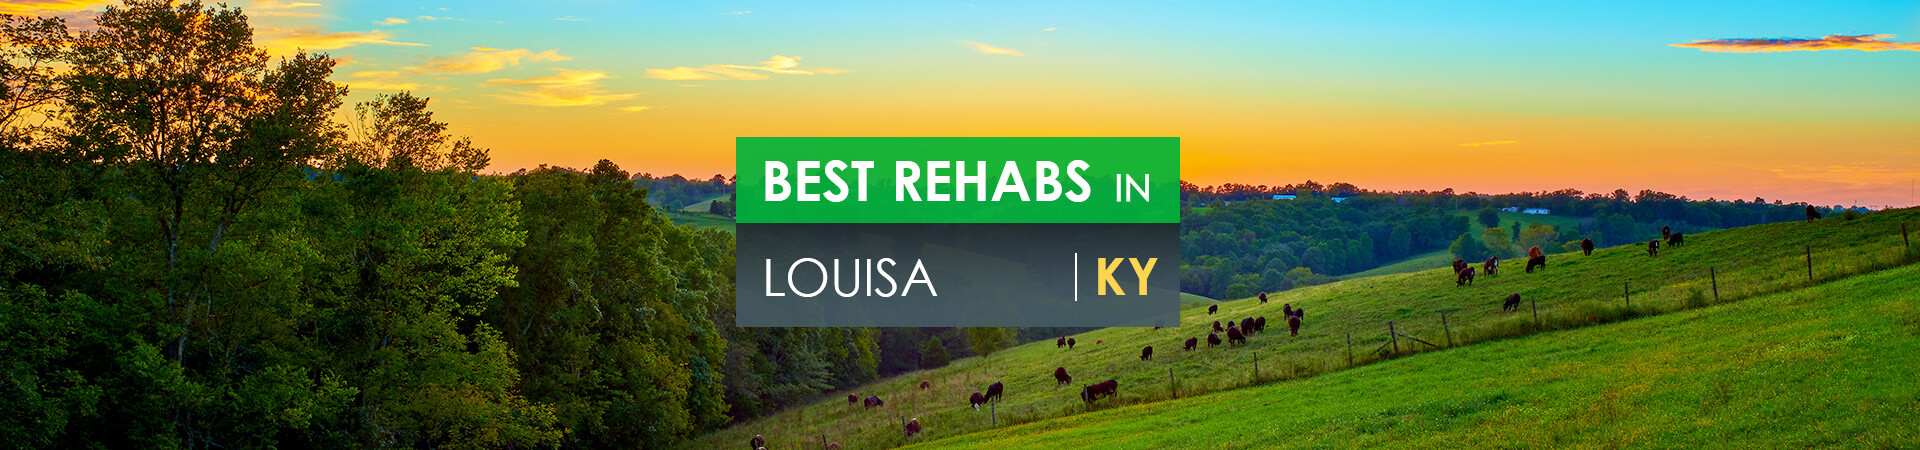 Best rehabs in Louisa, KY